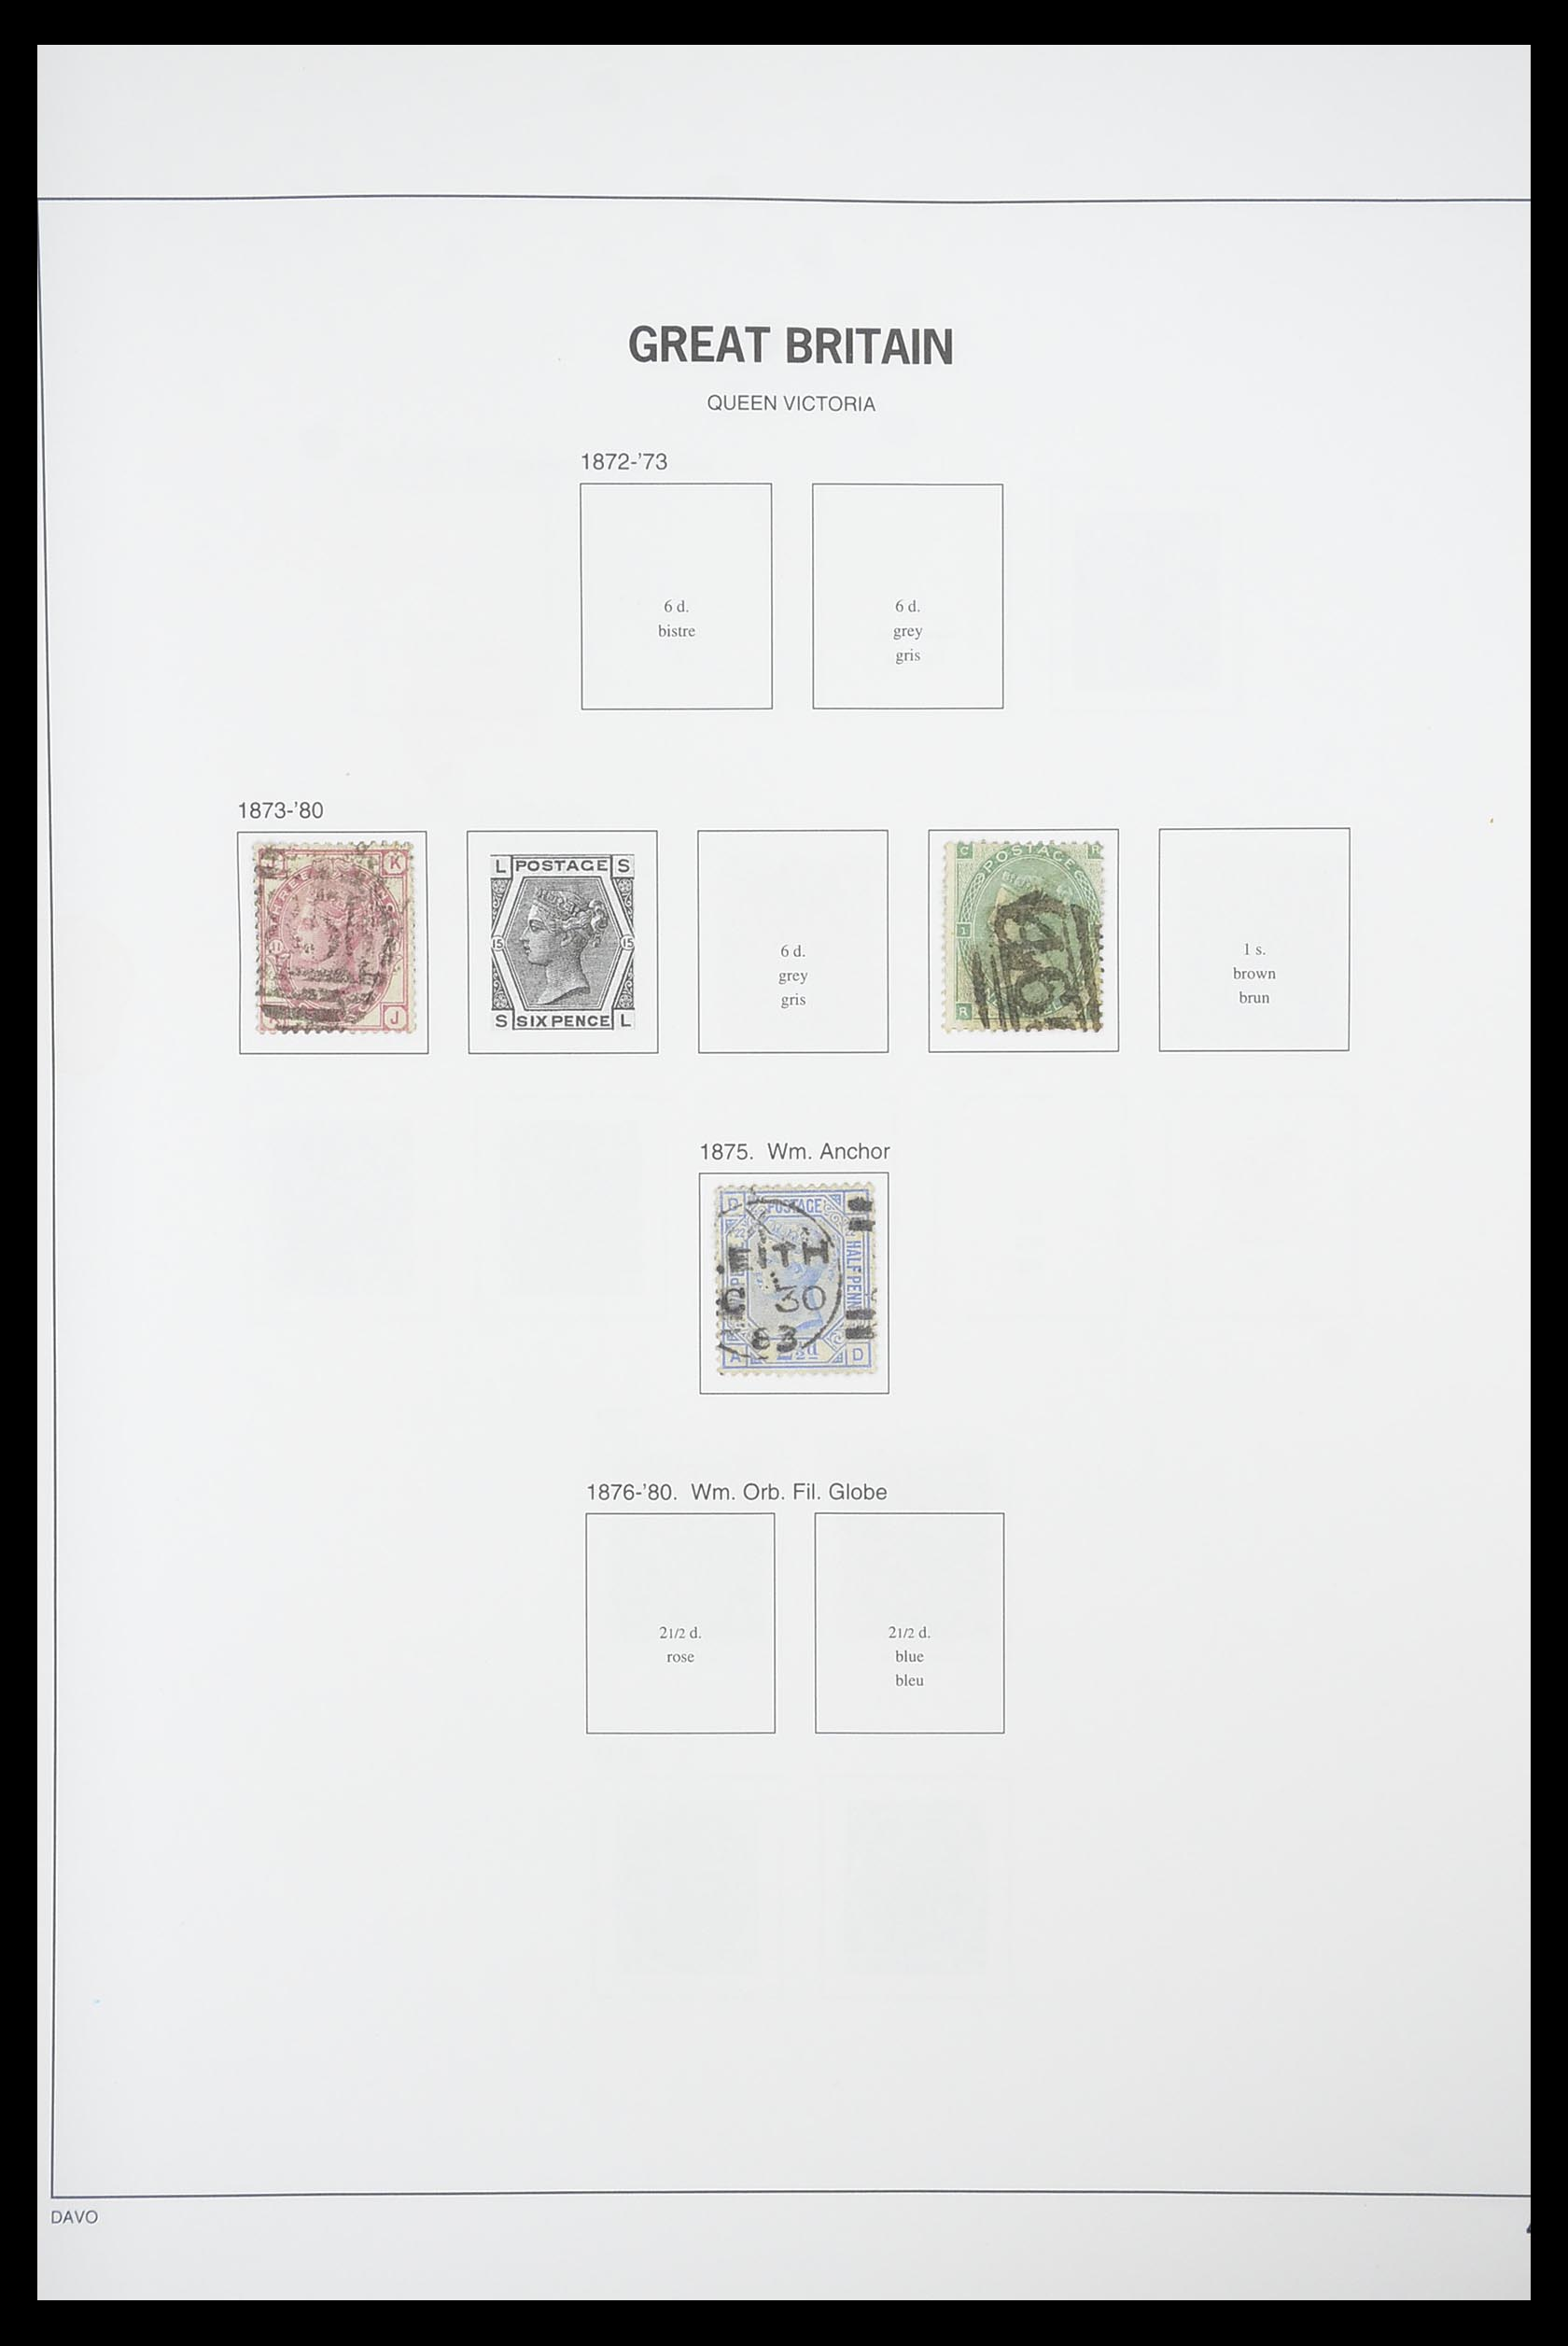 33898 003 - Stamp collection 33898 Great Britain 1840-2006.